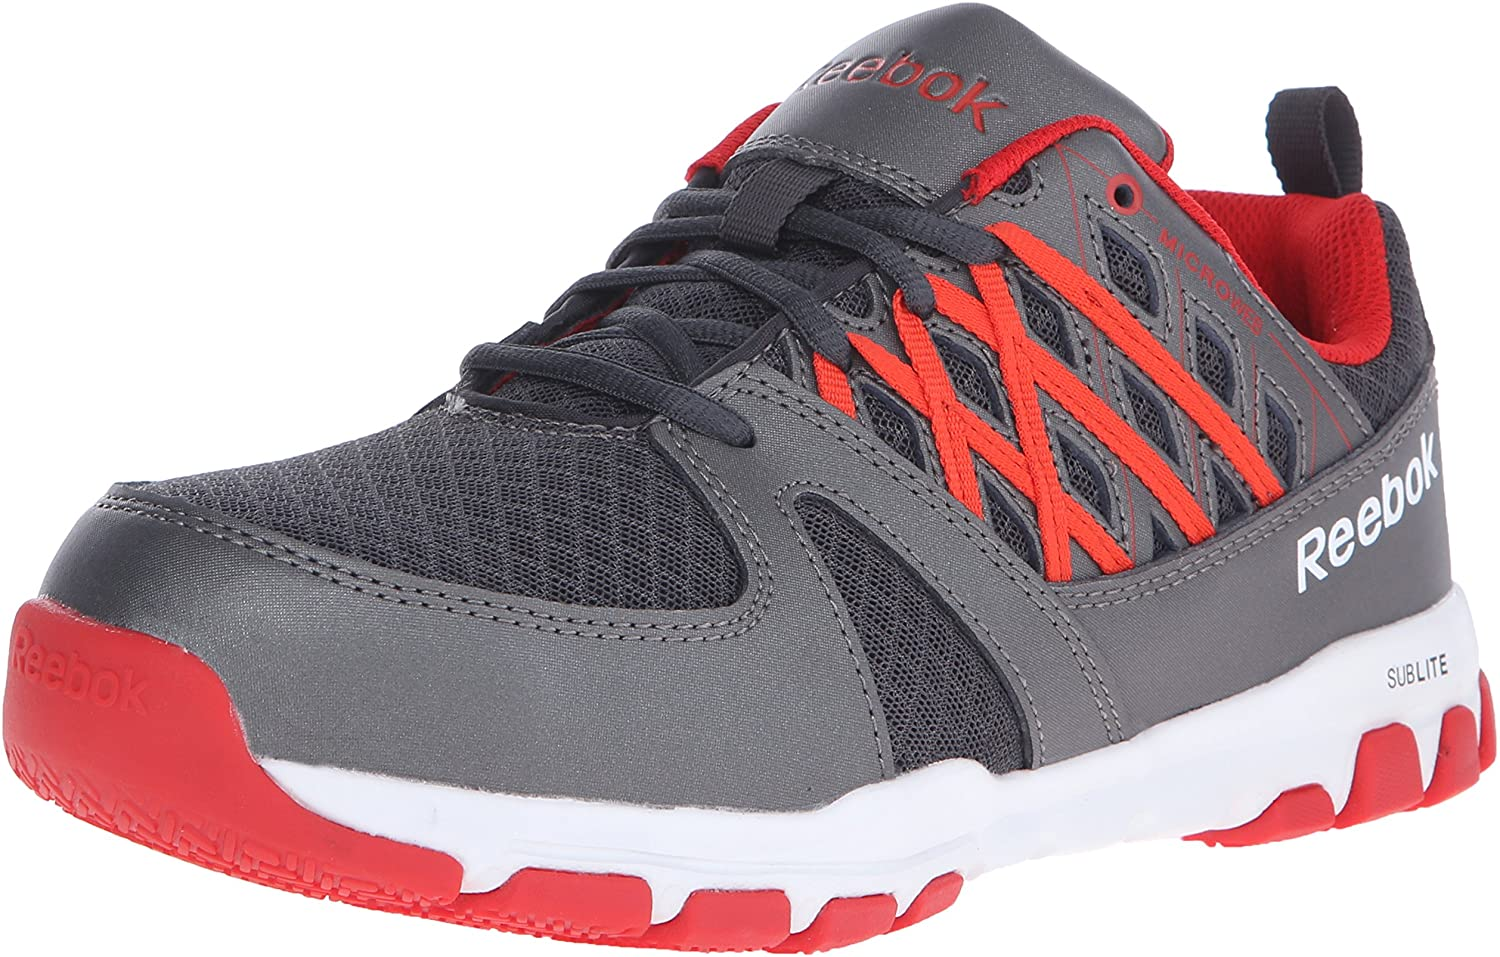 REEBOK WORK MEN'S SUBLITE ATHLETIC SAFETY SHOE